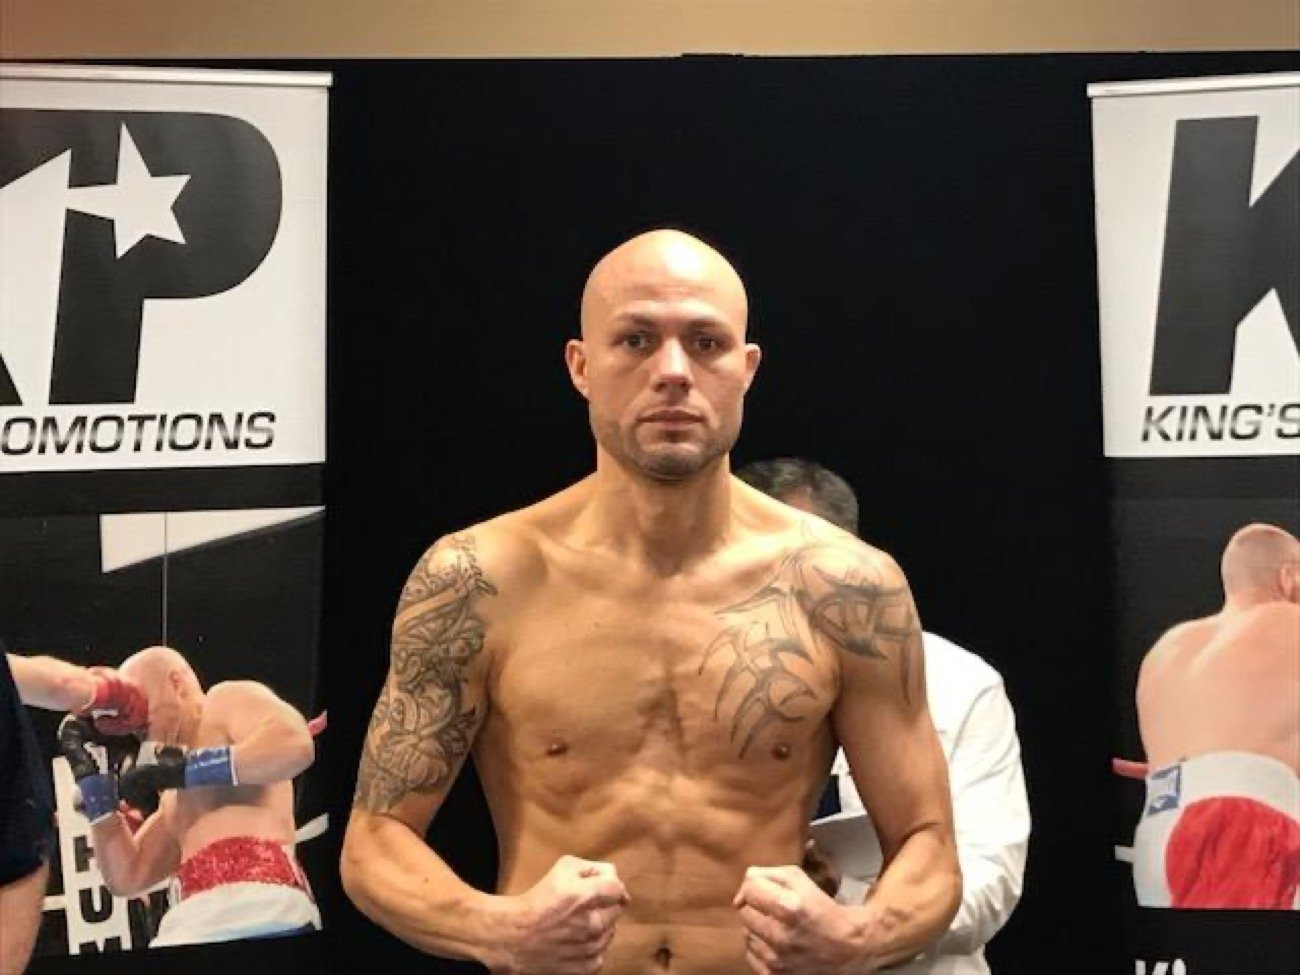 Kermit Cintron, Sergio Martinez - Former Two-time world welterweight champion Kermit Cintron (39-6, 30 KOs) would like to let former world middleweight champion Sergio Martinez, that if he were to comeback, it should be against him.